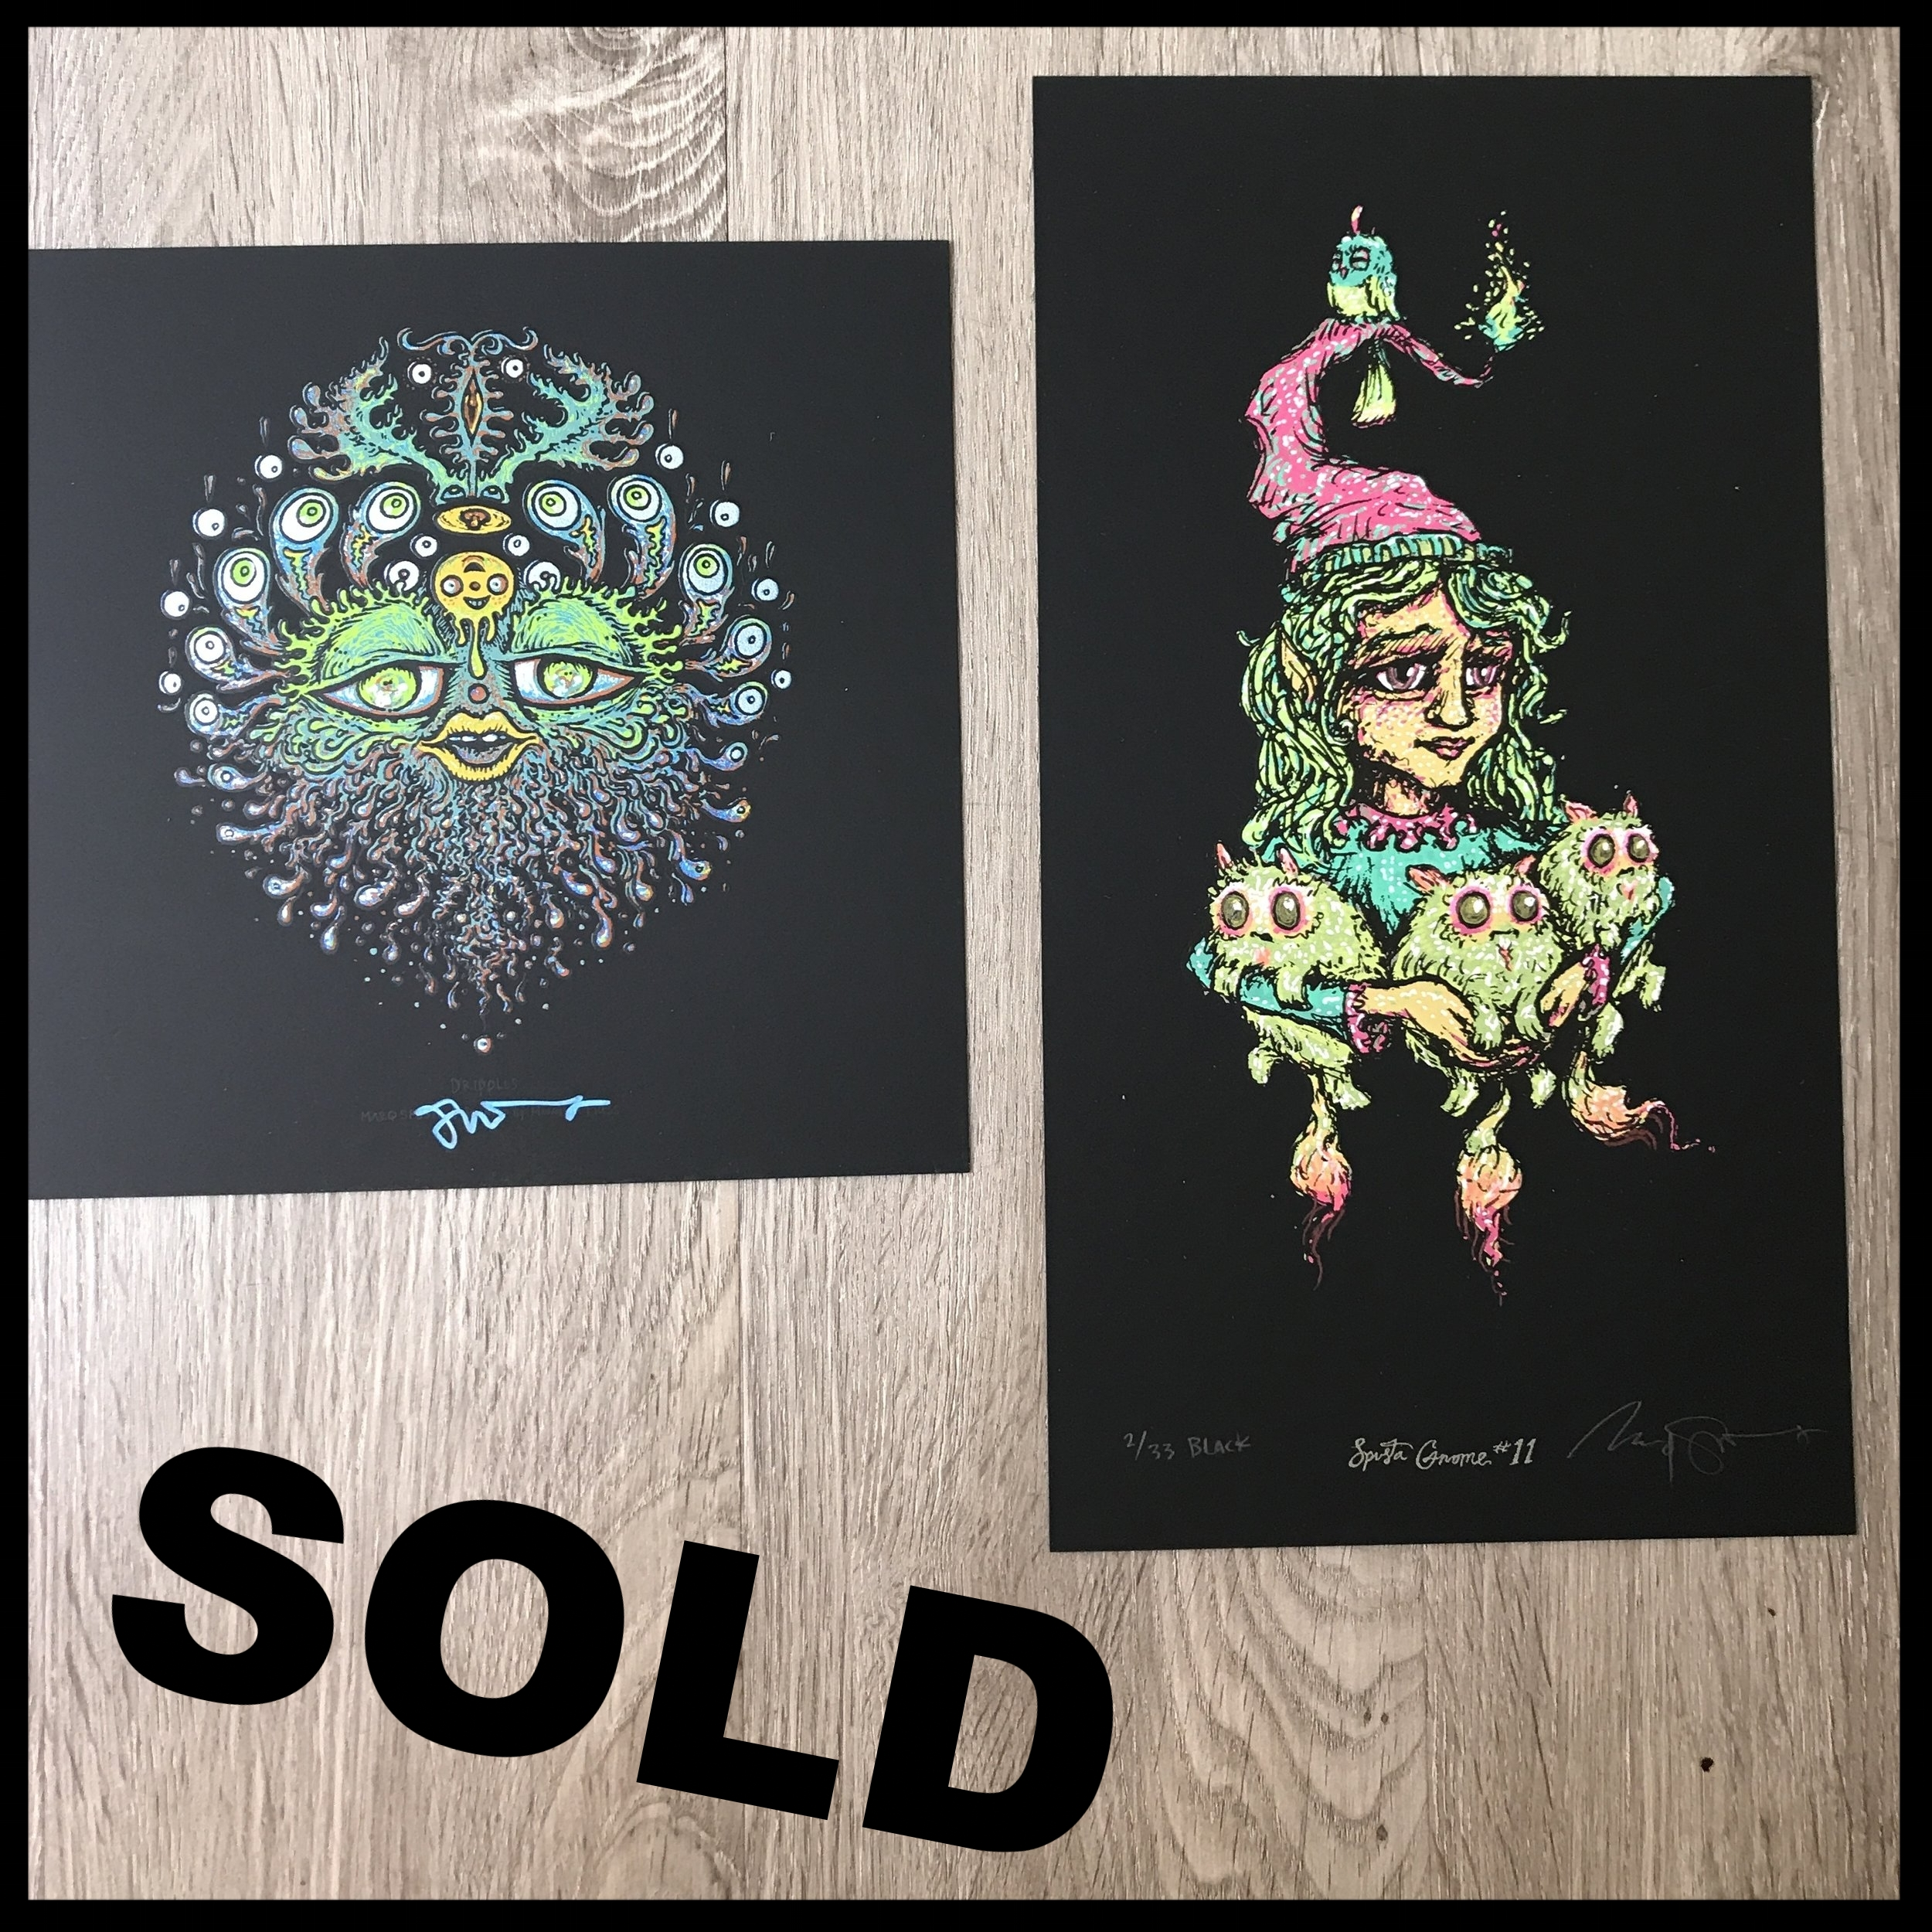 "$140 - PACK I - Full Size Gnome 11 lightly embellished 6"" x 11"" + Dripples 7"" x 7"""